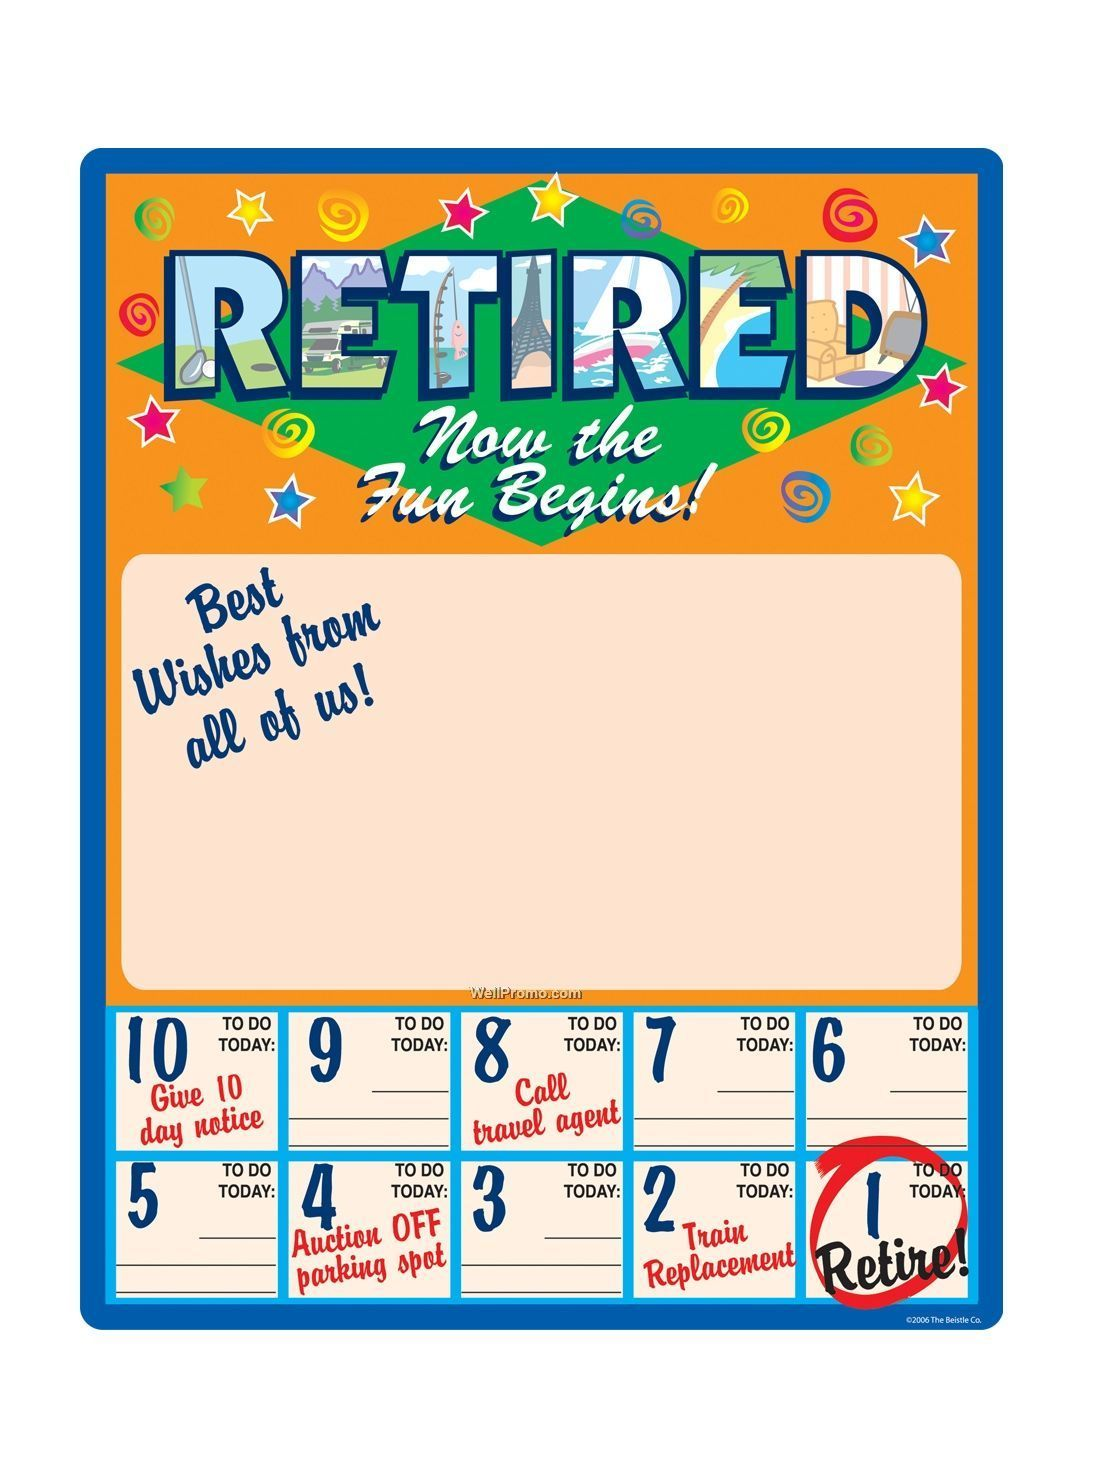 Funny countdown to retirement calendar calendar template 2017 make a farewellretirement countdown calendar to print out pronofoot35fo Choice Image